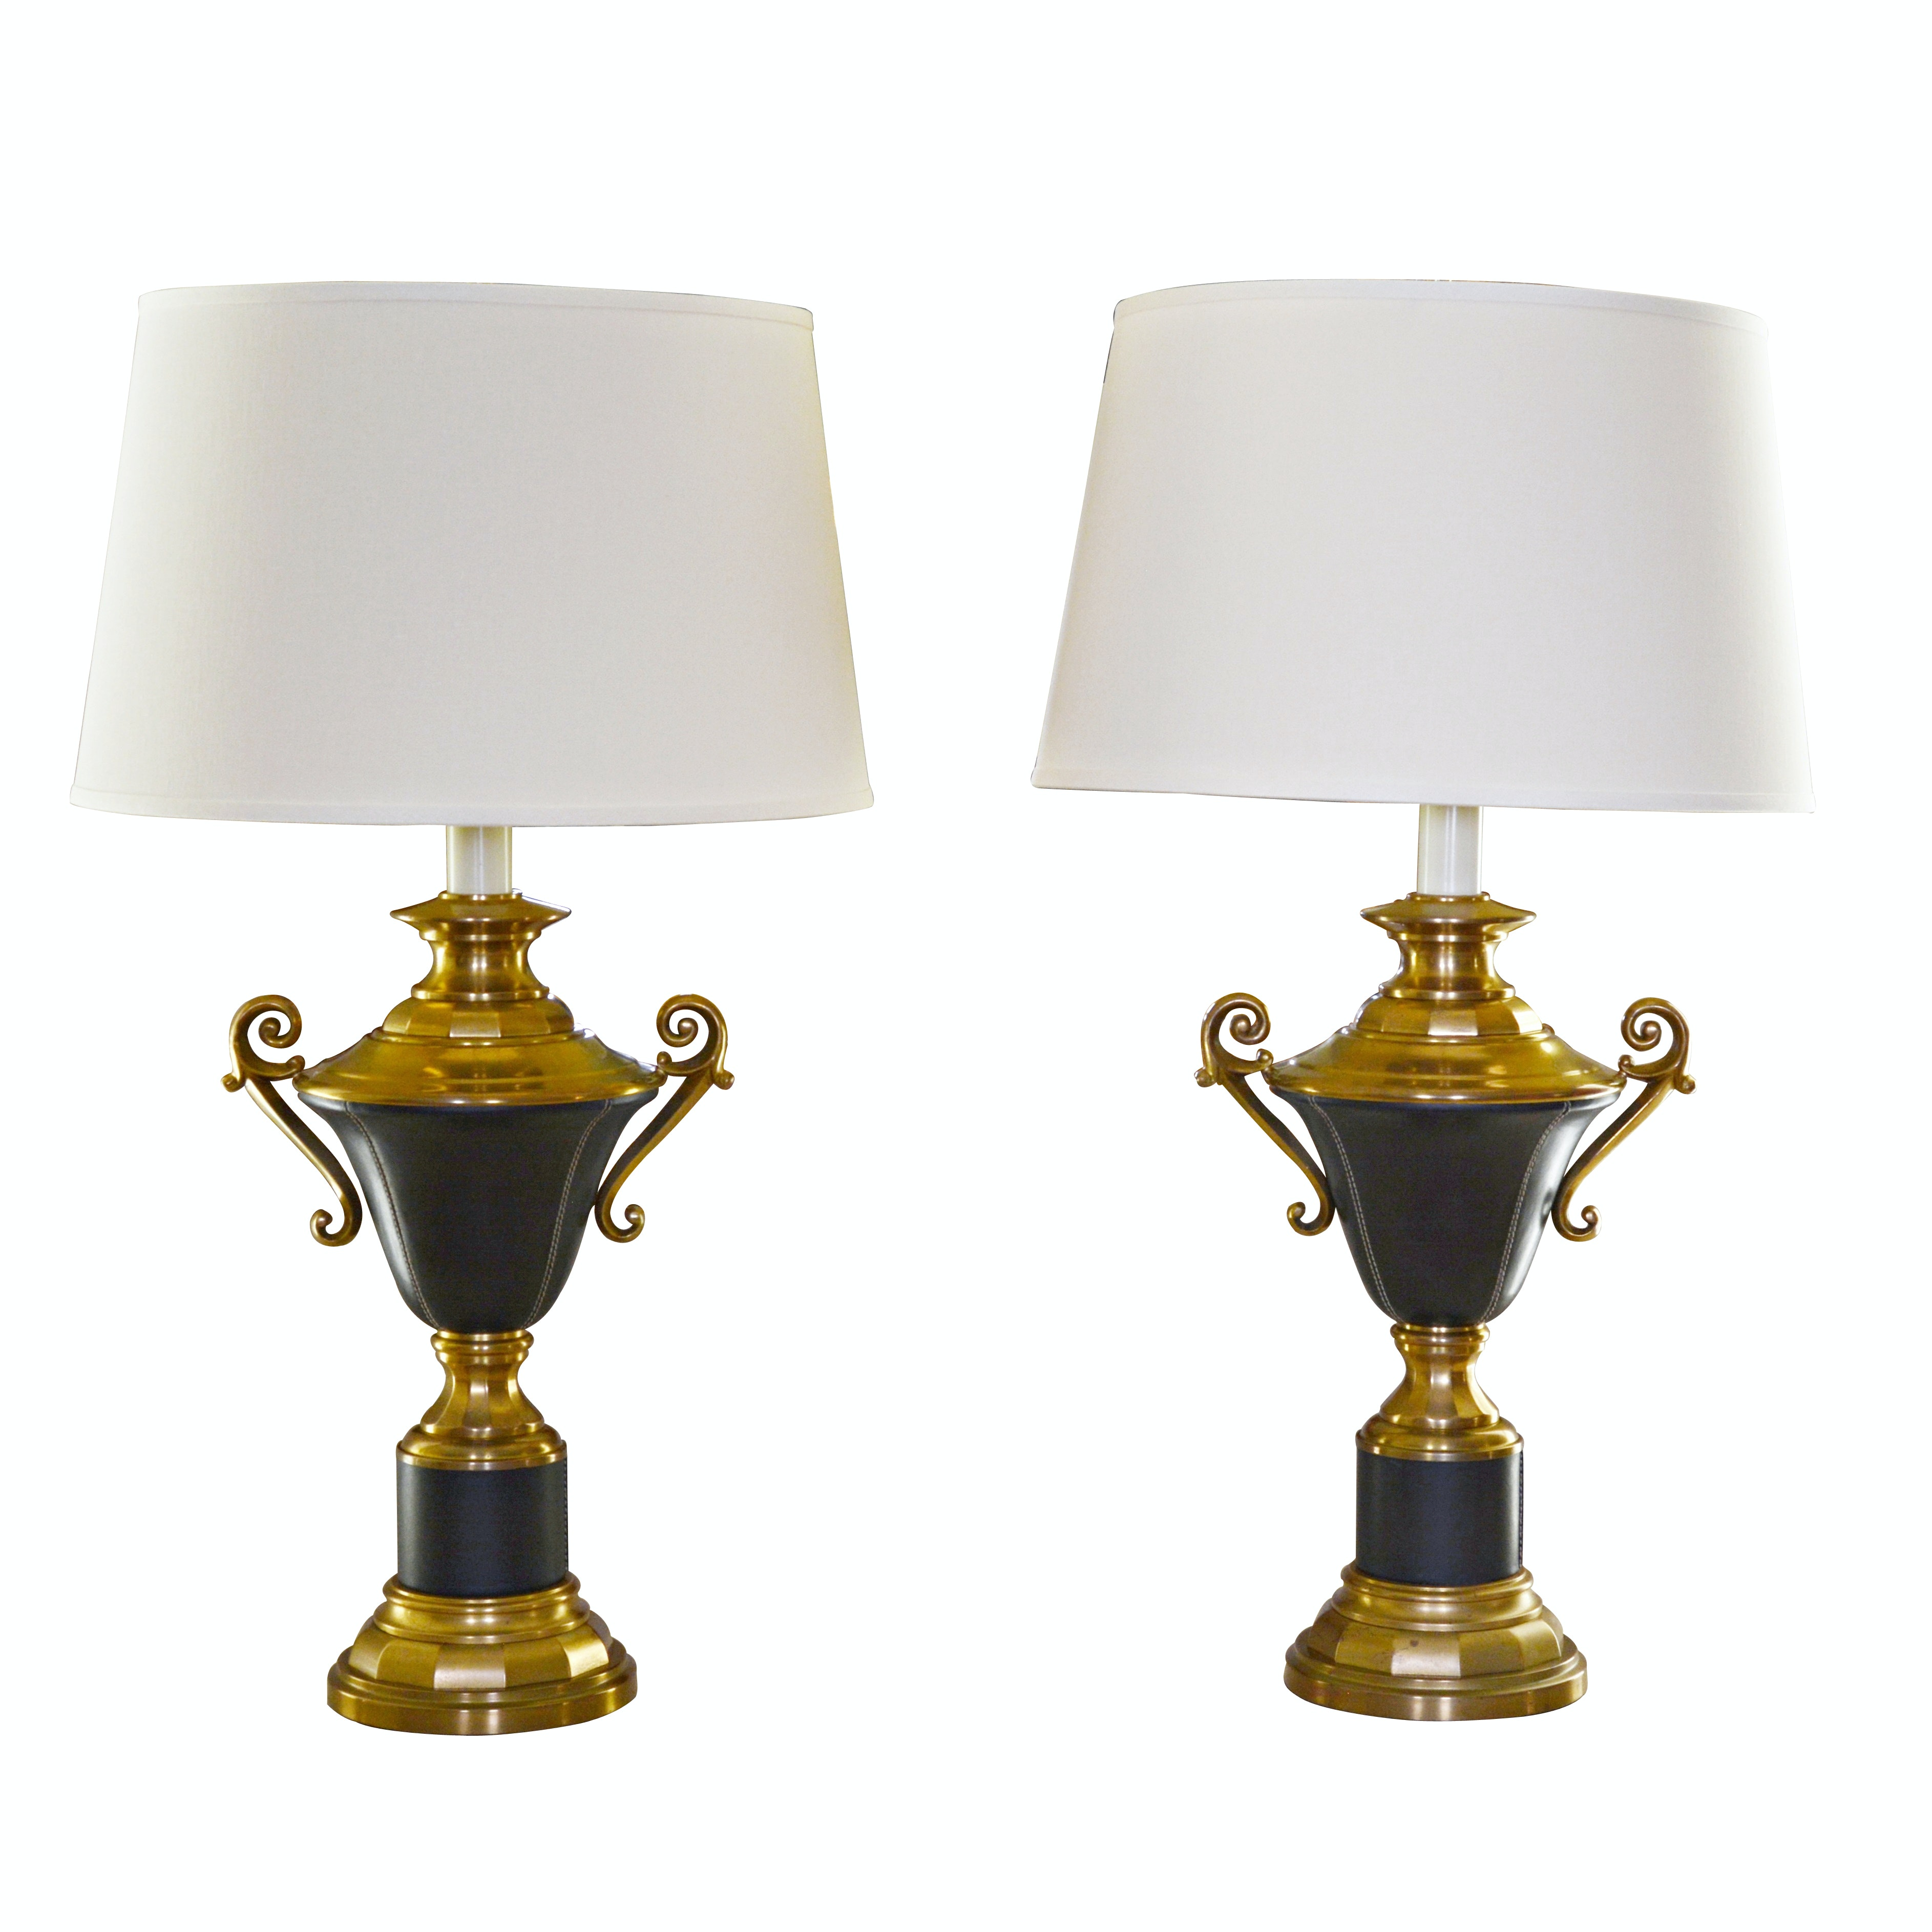 Pair of Brass and Leather Table Lamps